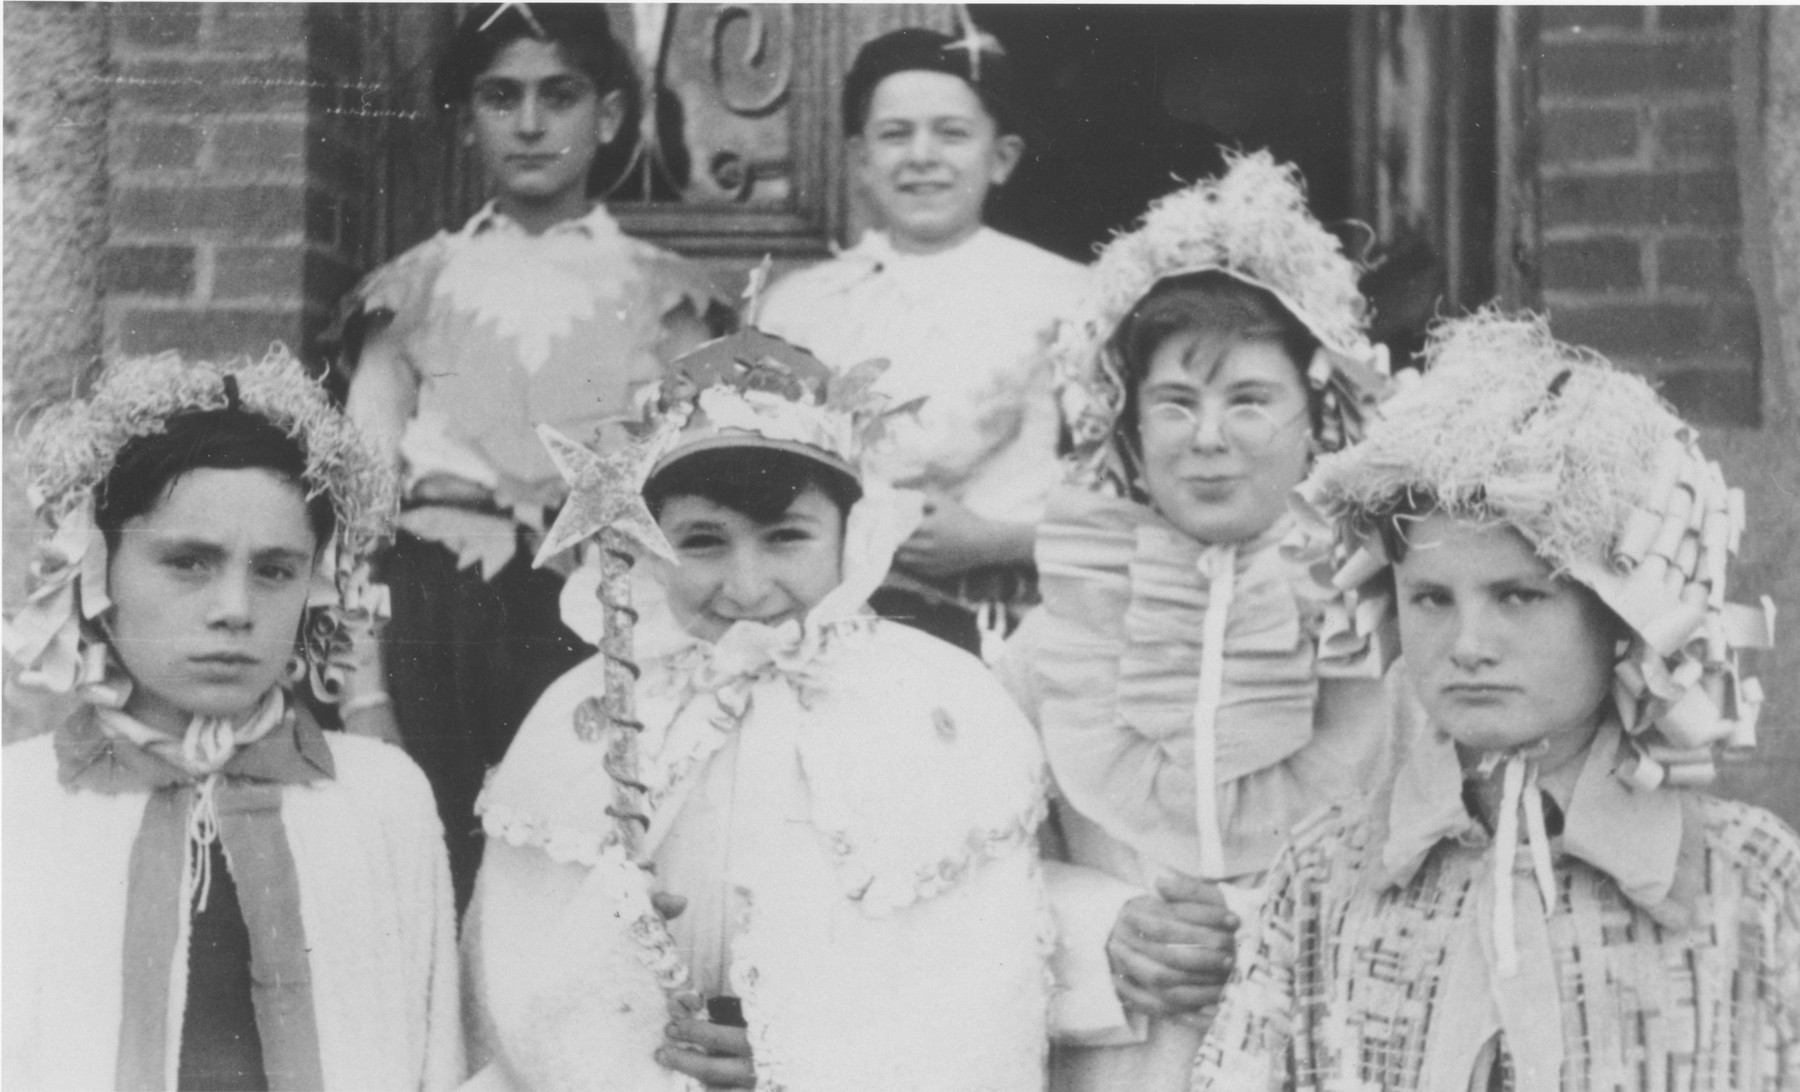 Jewish refugee children in the Chabannes children's home pose dressed in Purim costumes.  Pictured from left to right are Michel Razymovsky, Georges Sztrum and Arnaud Marcouse.  Standing are Georges Jacob and Norbert Bikales.